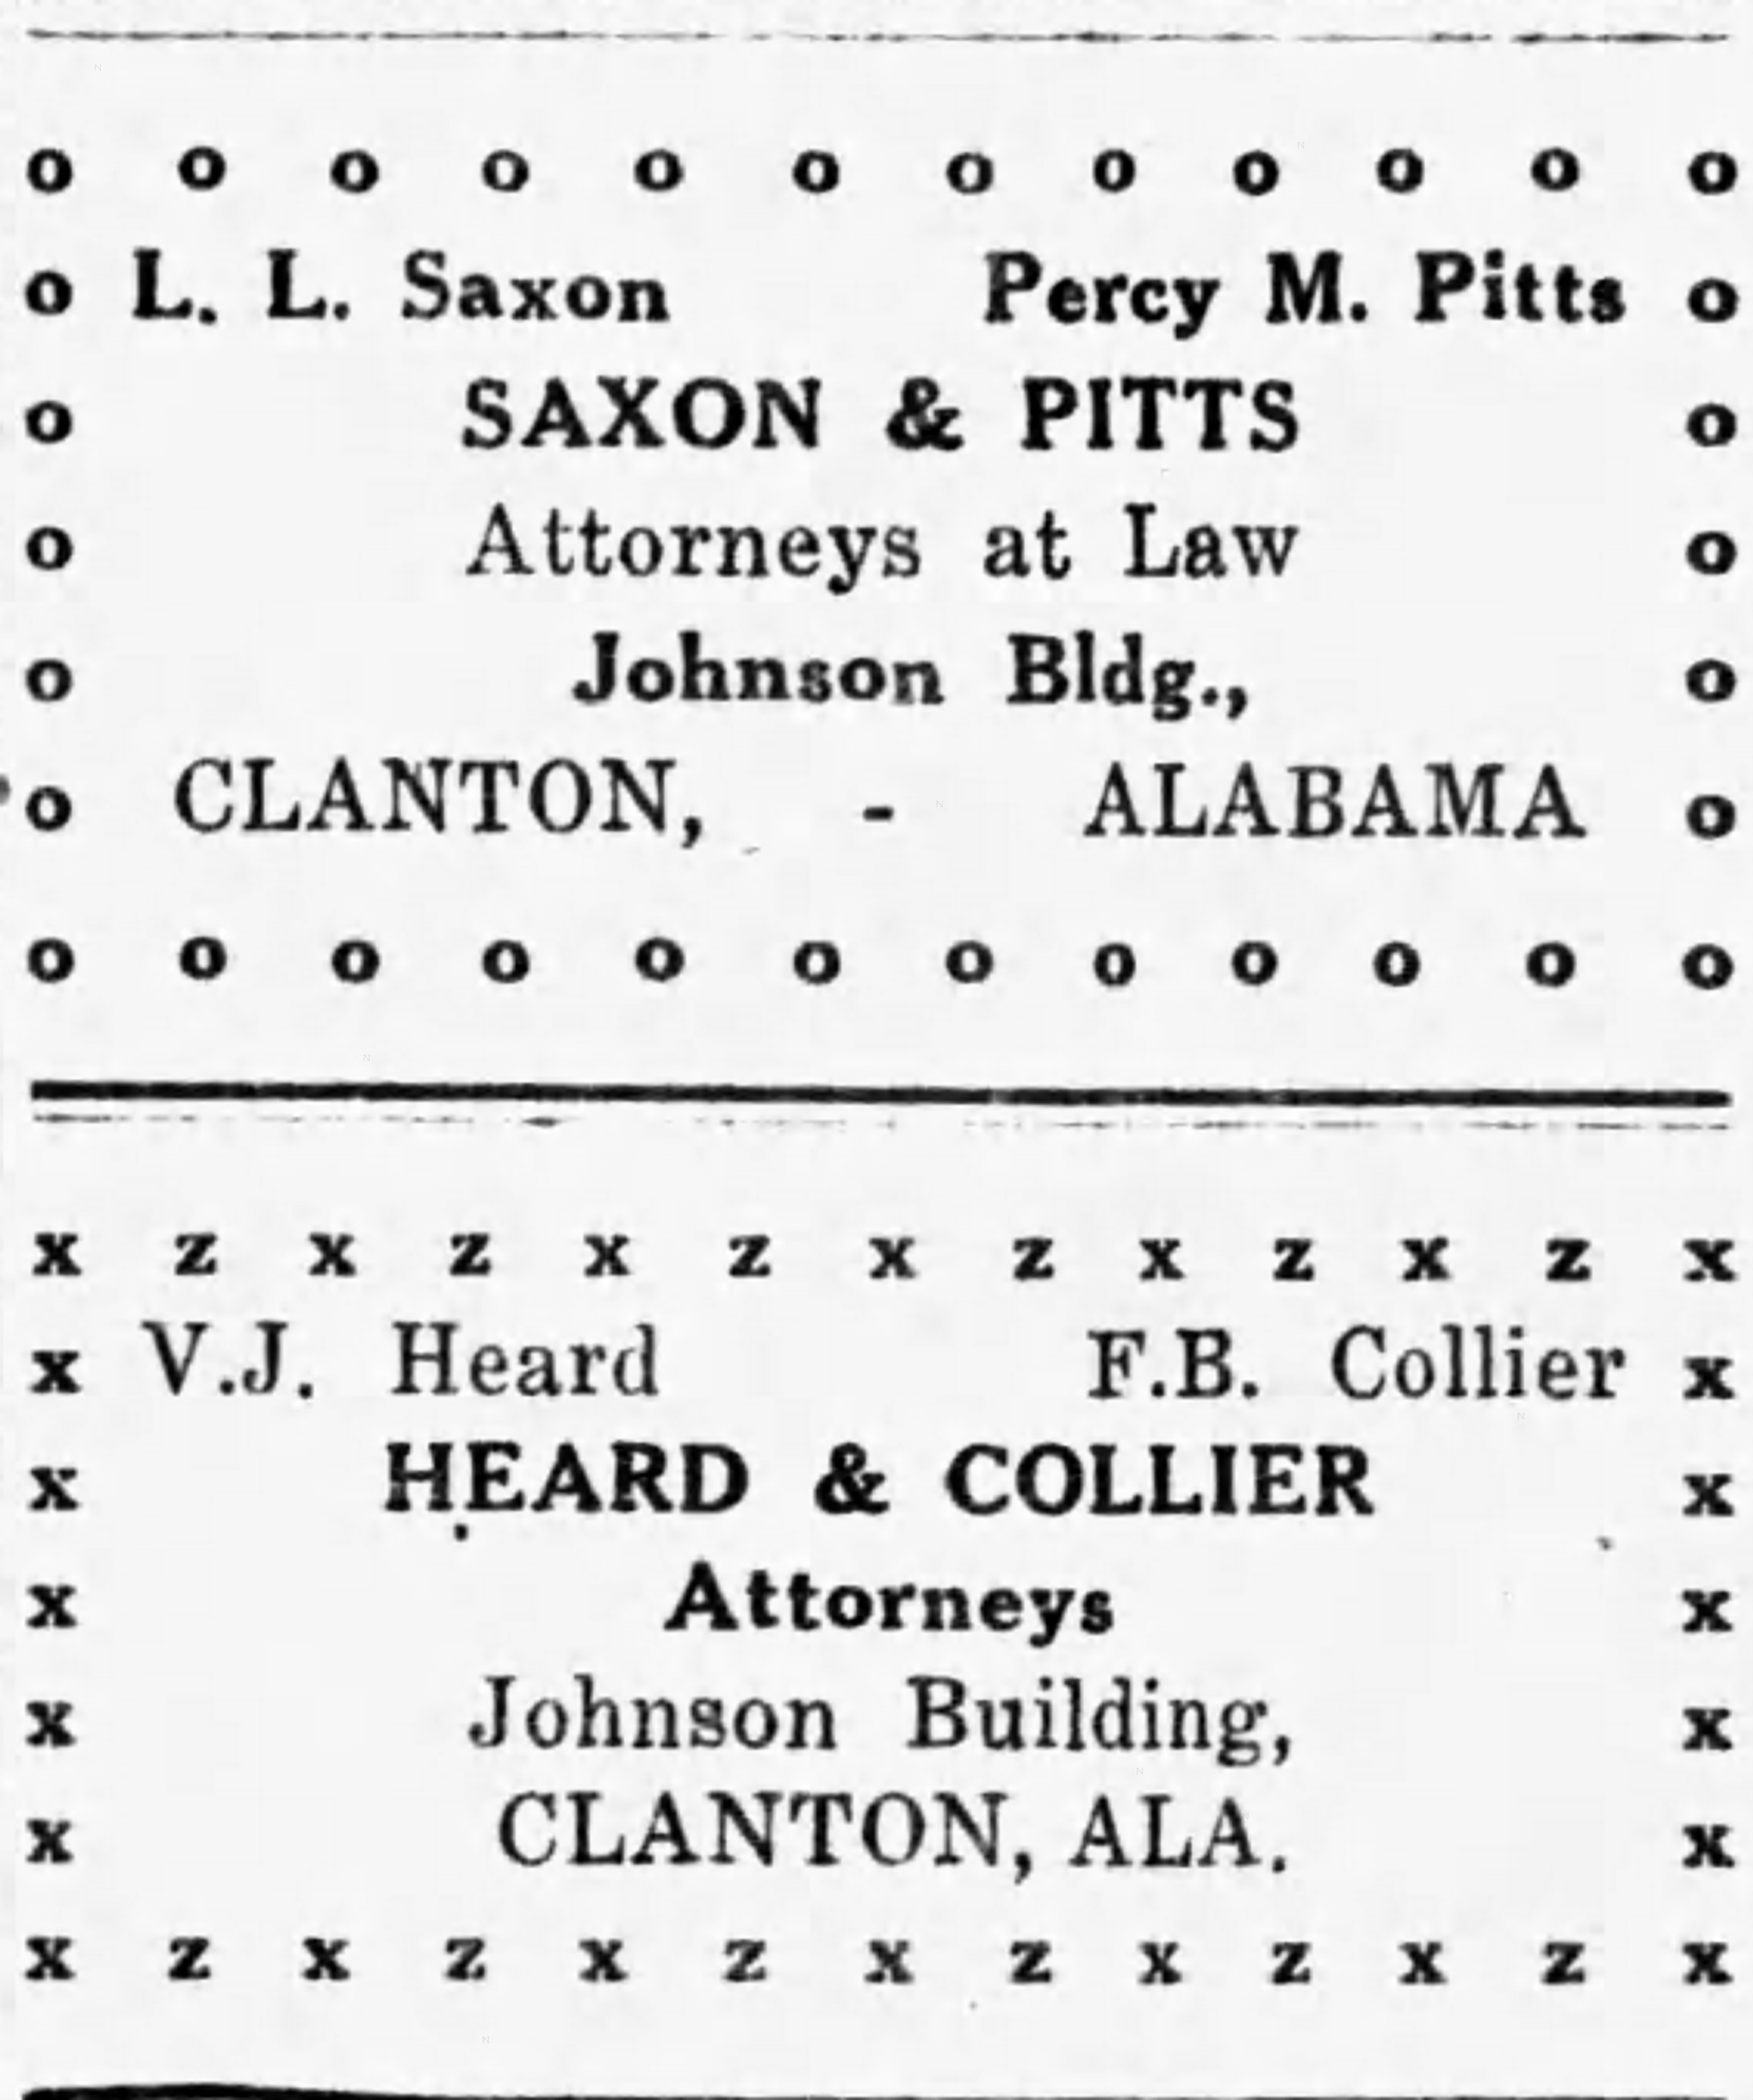 Patron – In Chilton County 1921, bridges were being closed and the women had meetings